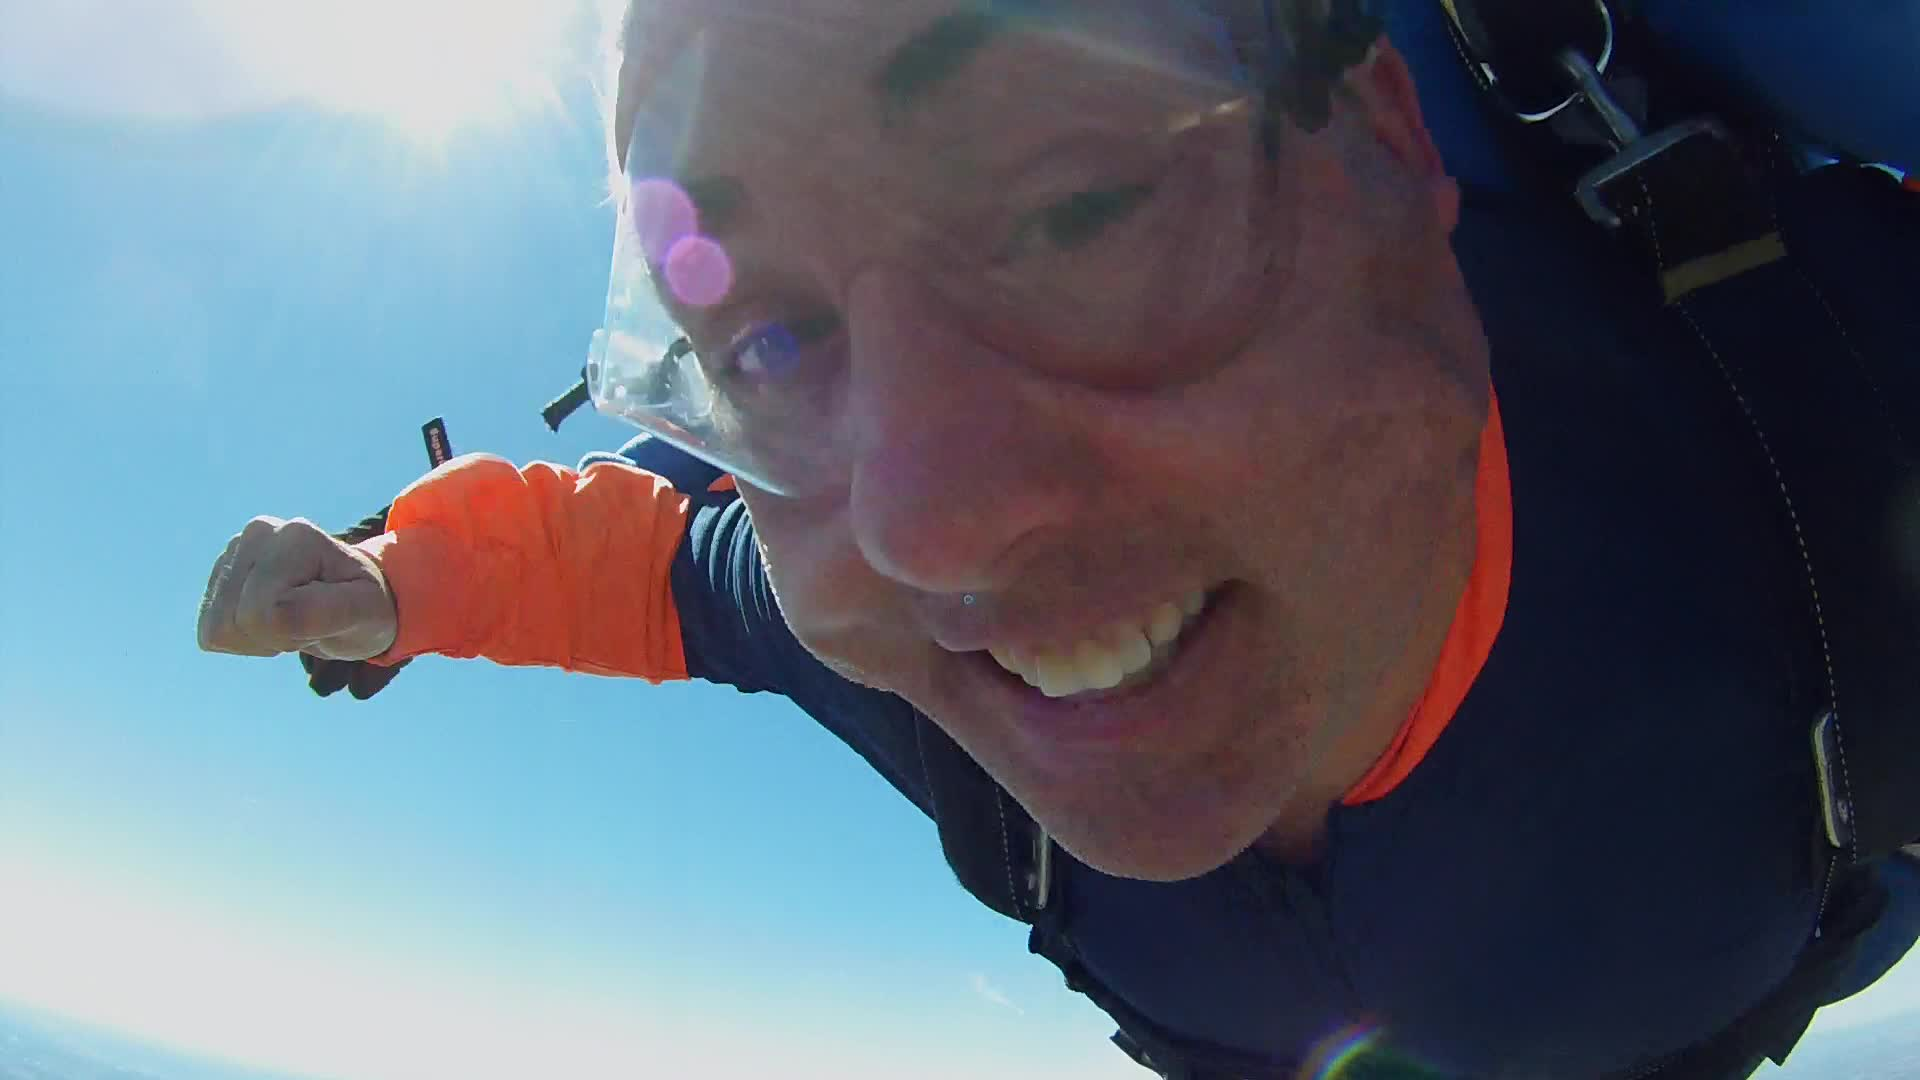 Here I am dropping to earth from 9,000 feet traveling 120 mph.